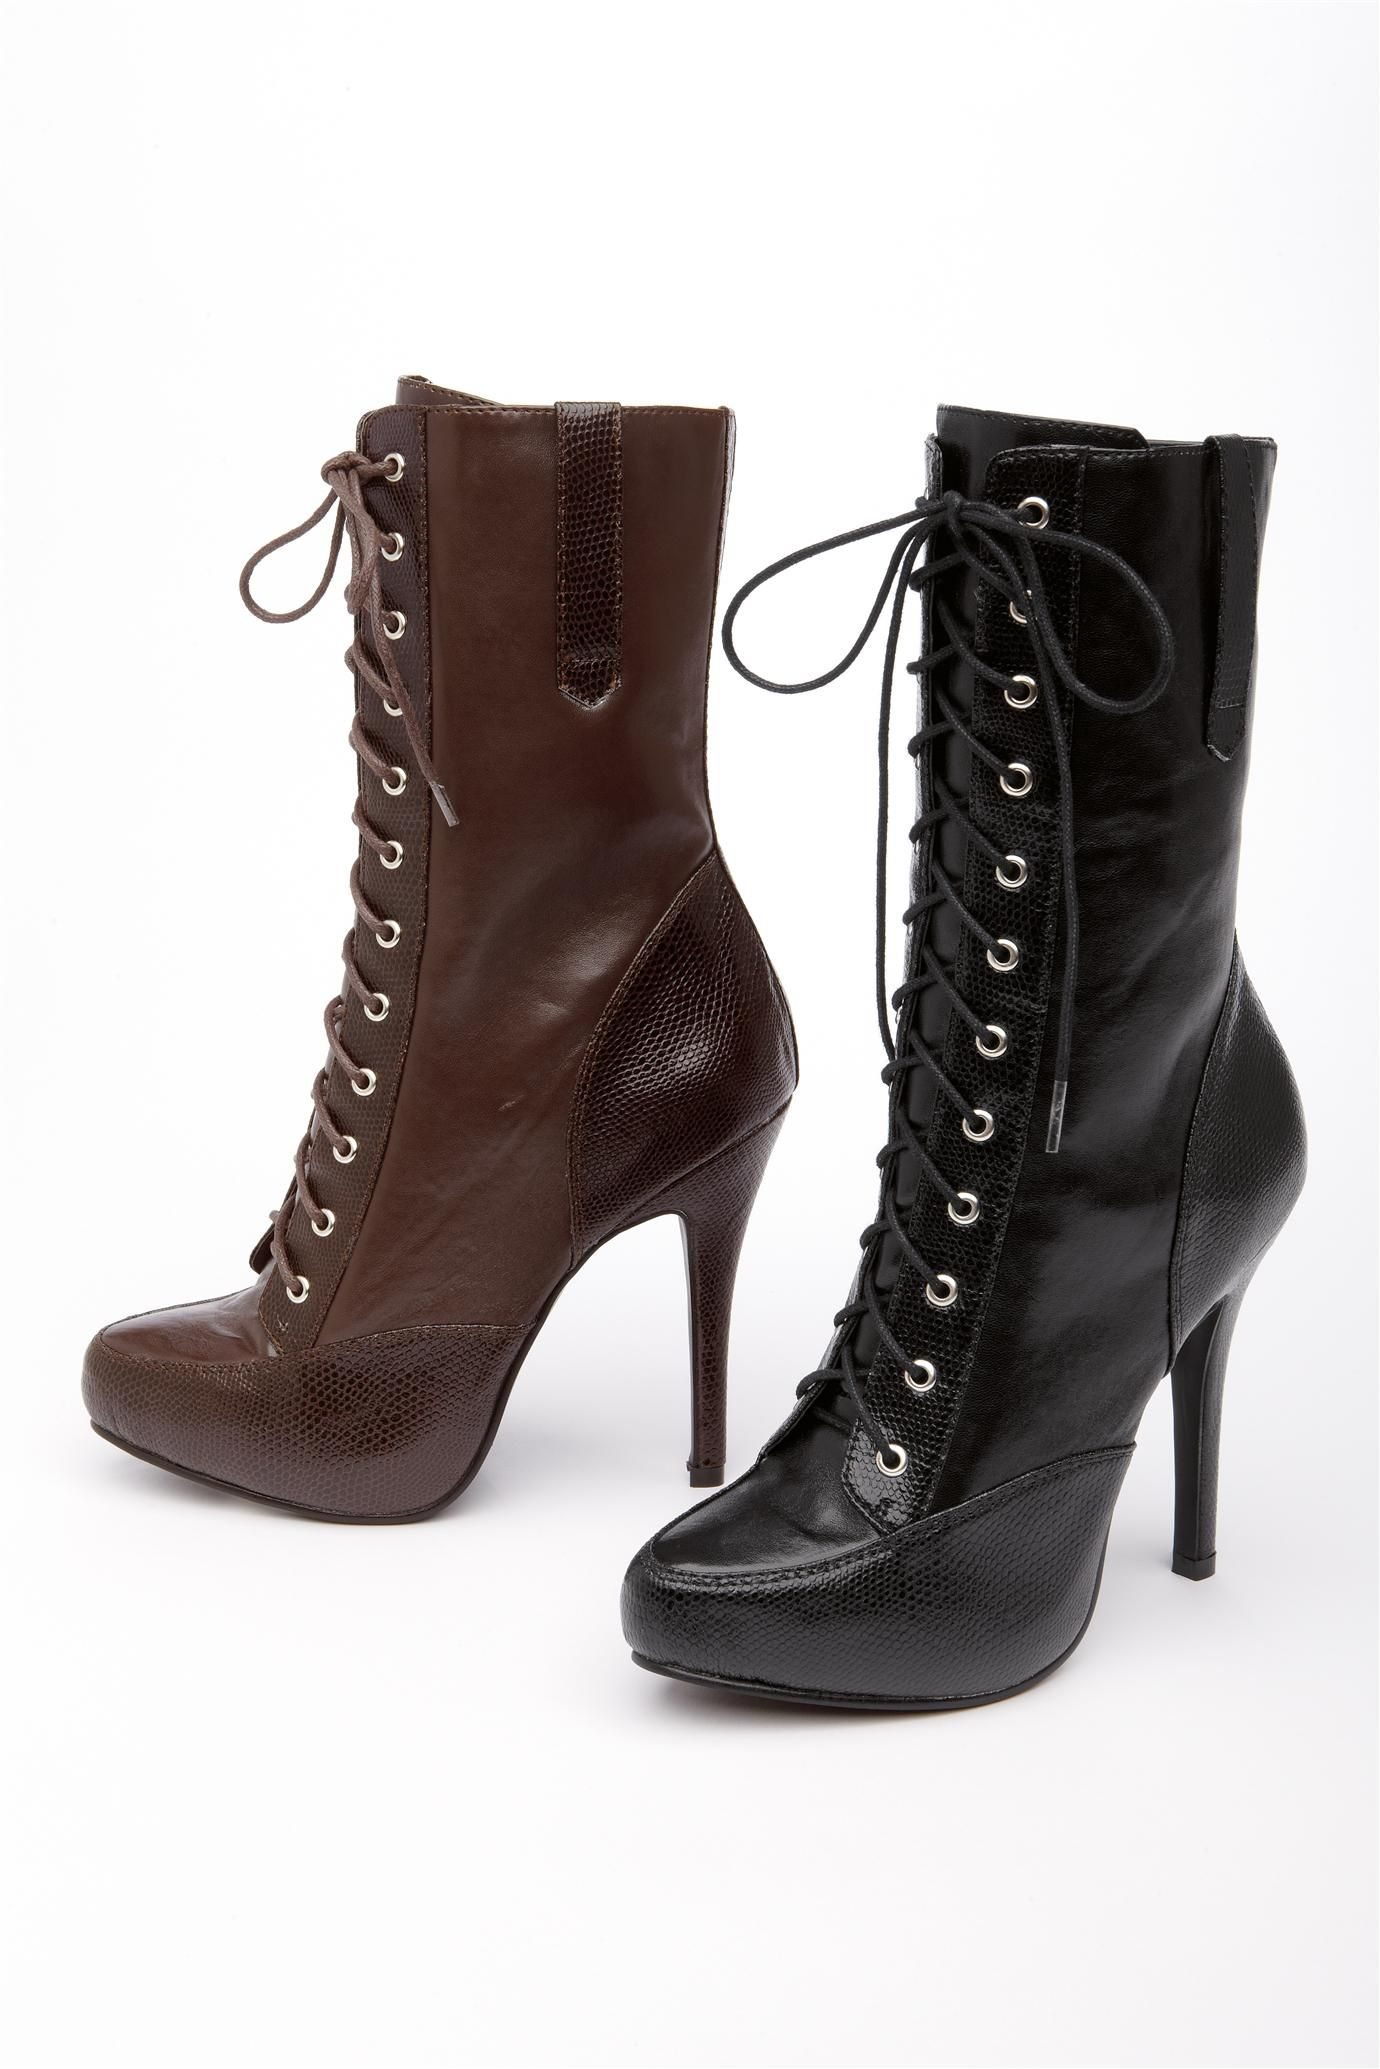 Lace-up High Heel Boot | High heel boots | Pinterest | Sexy Shoes